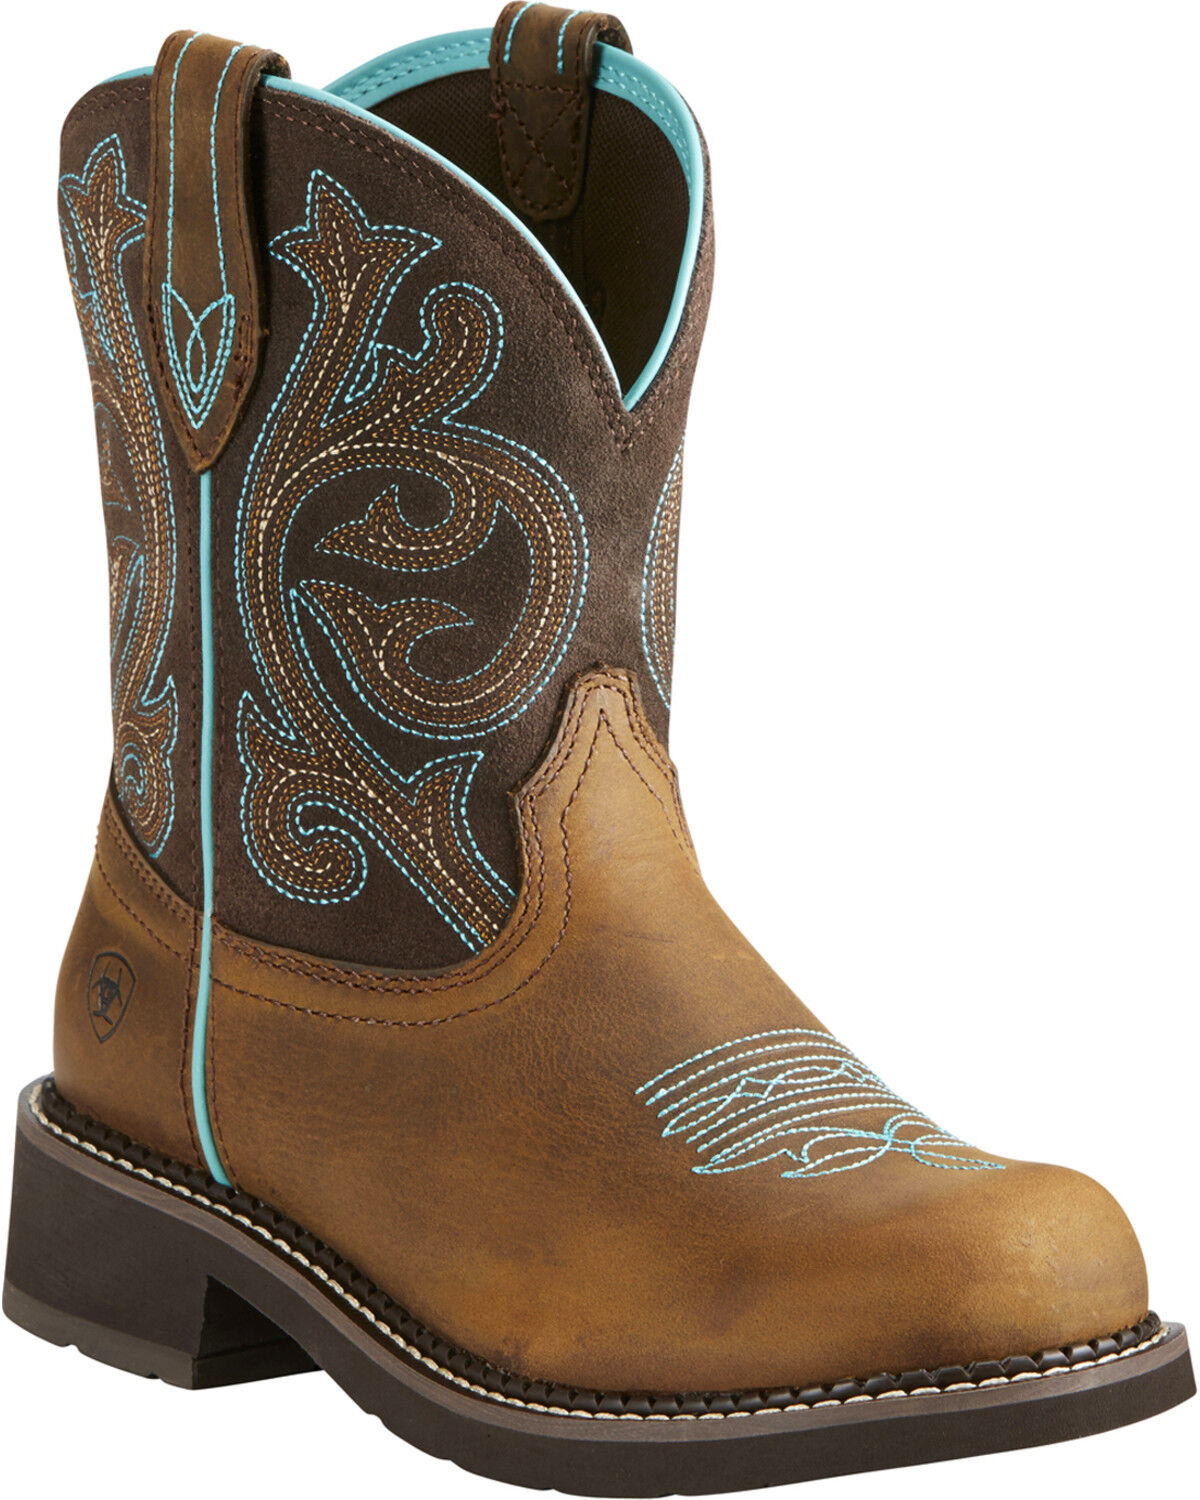 Ariat Fatbaby Women\u0027s Heritage Brown/Turquoise Cowgirl Boots , Round Toe